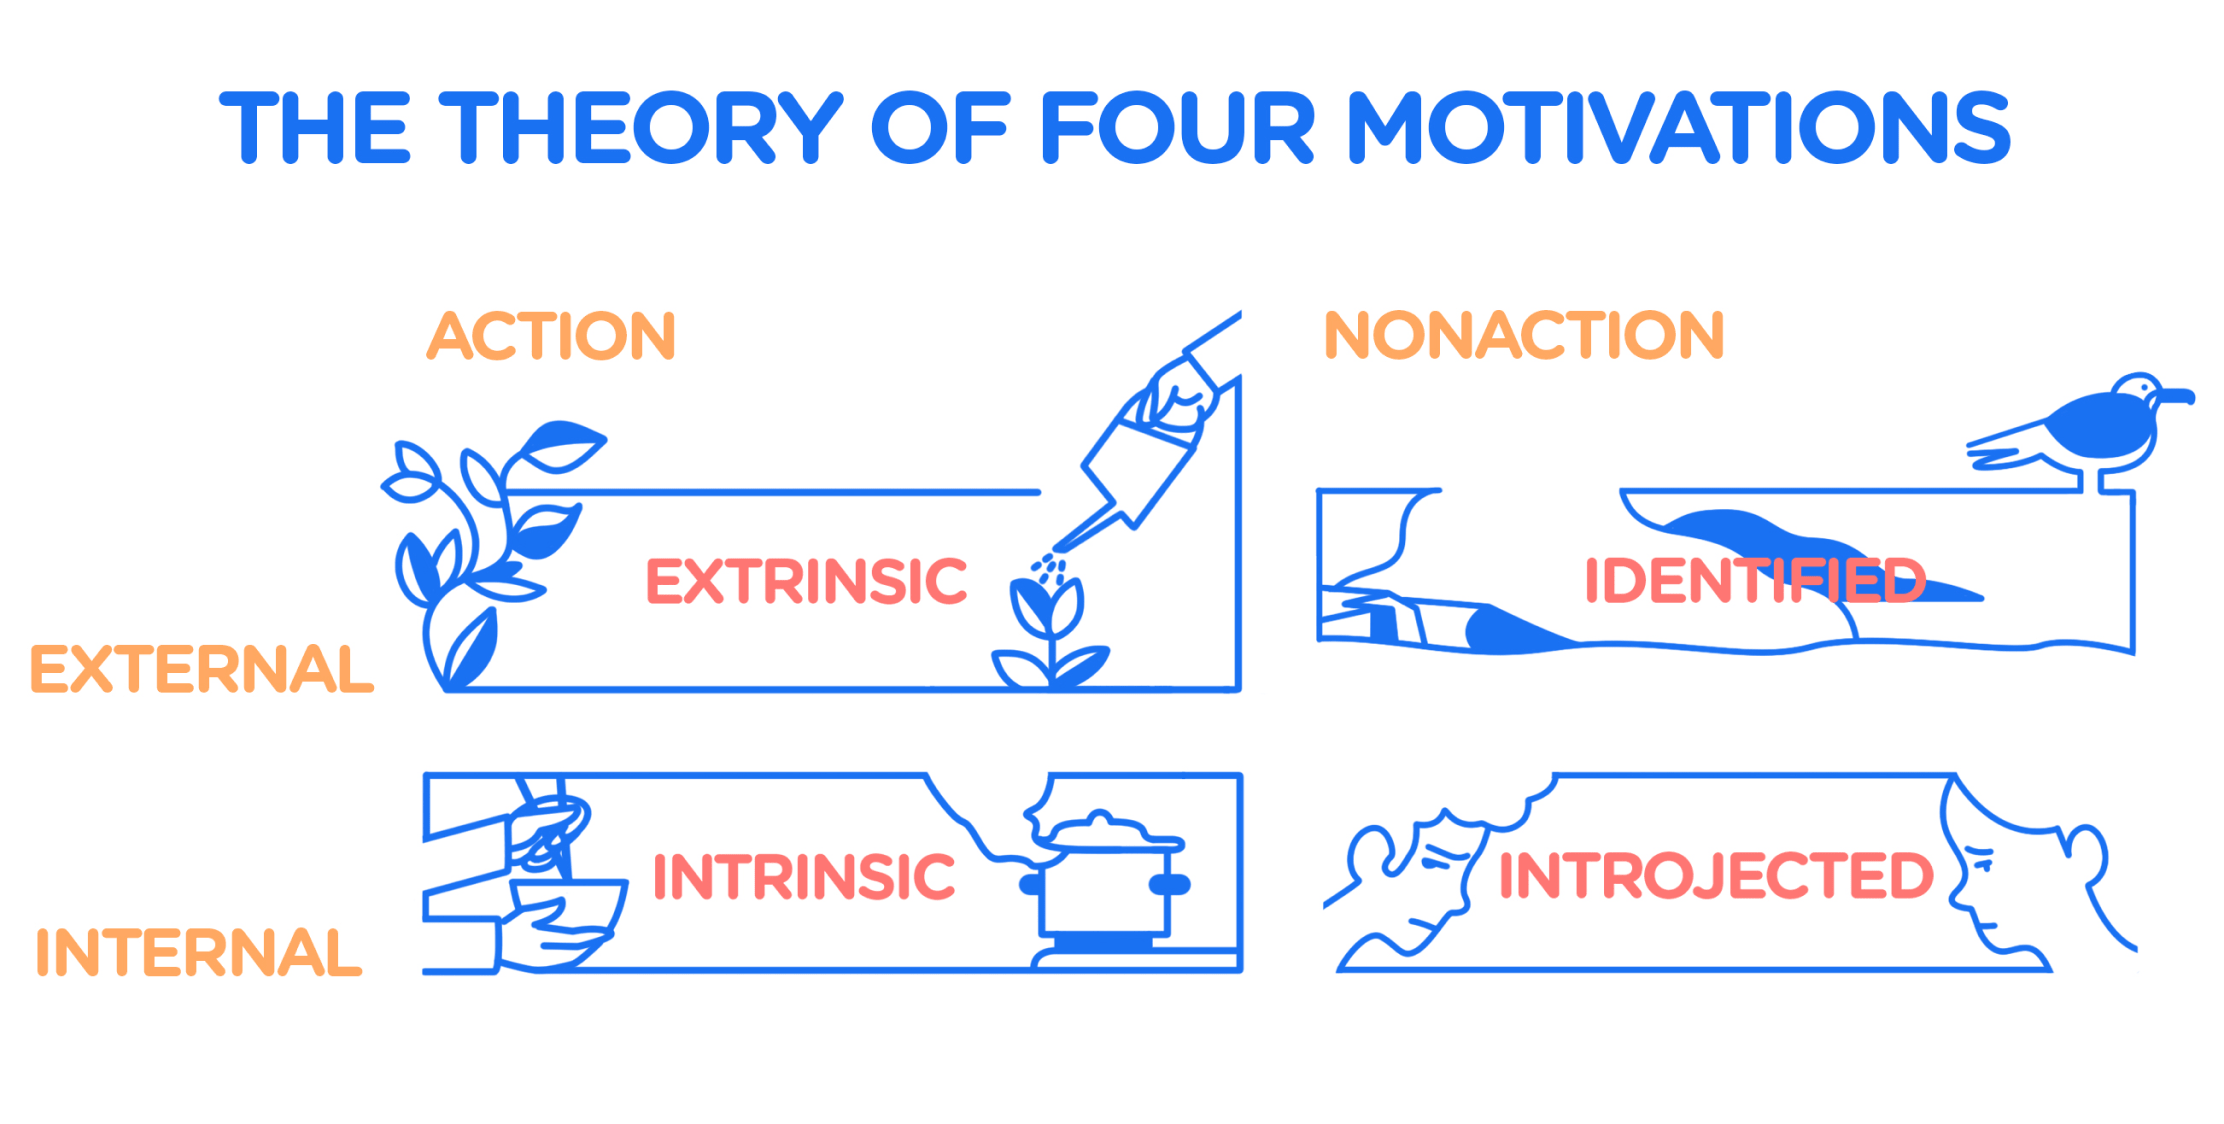 The theory of four motivations